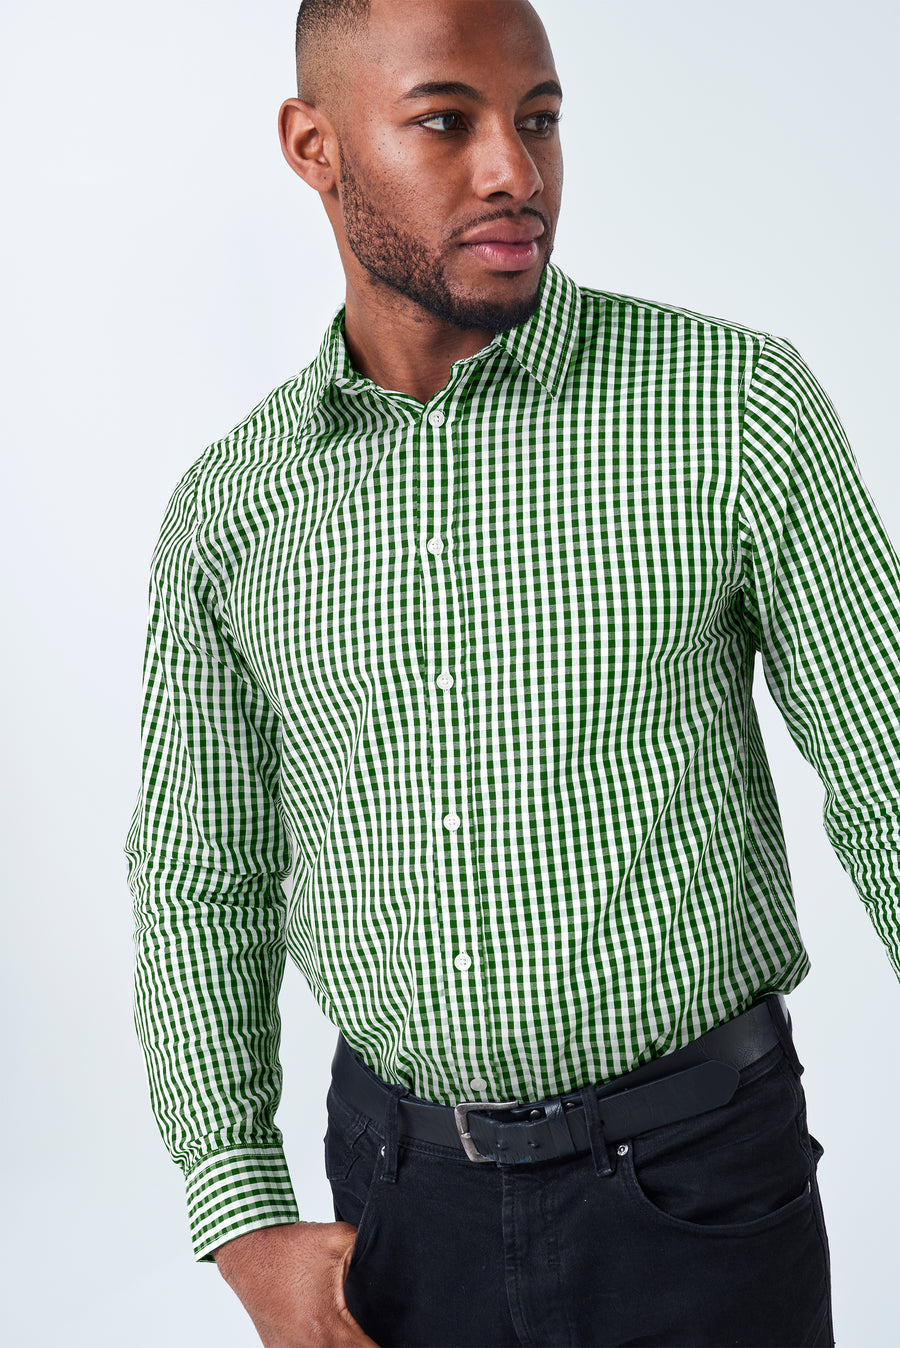 TEDDY Essential Gingham Mens's Shirt - Olive 'NEW COLOUR'